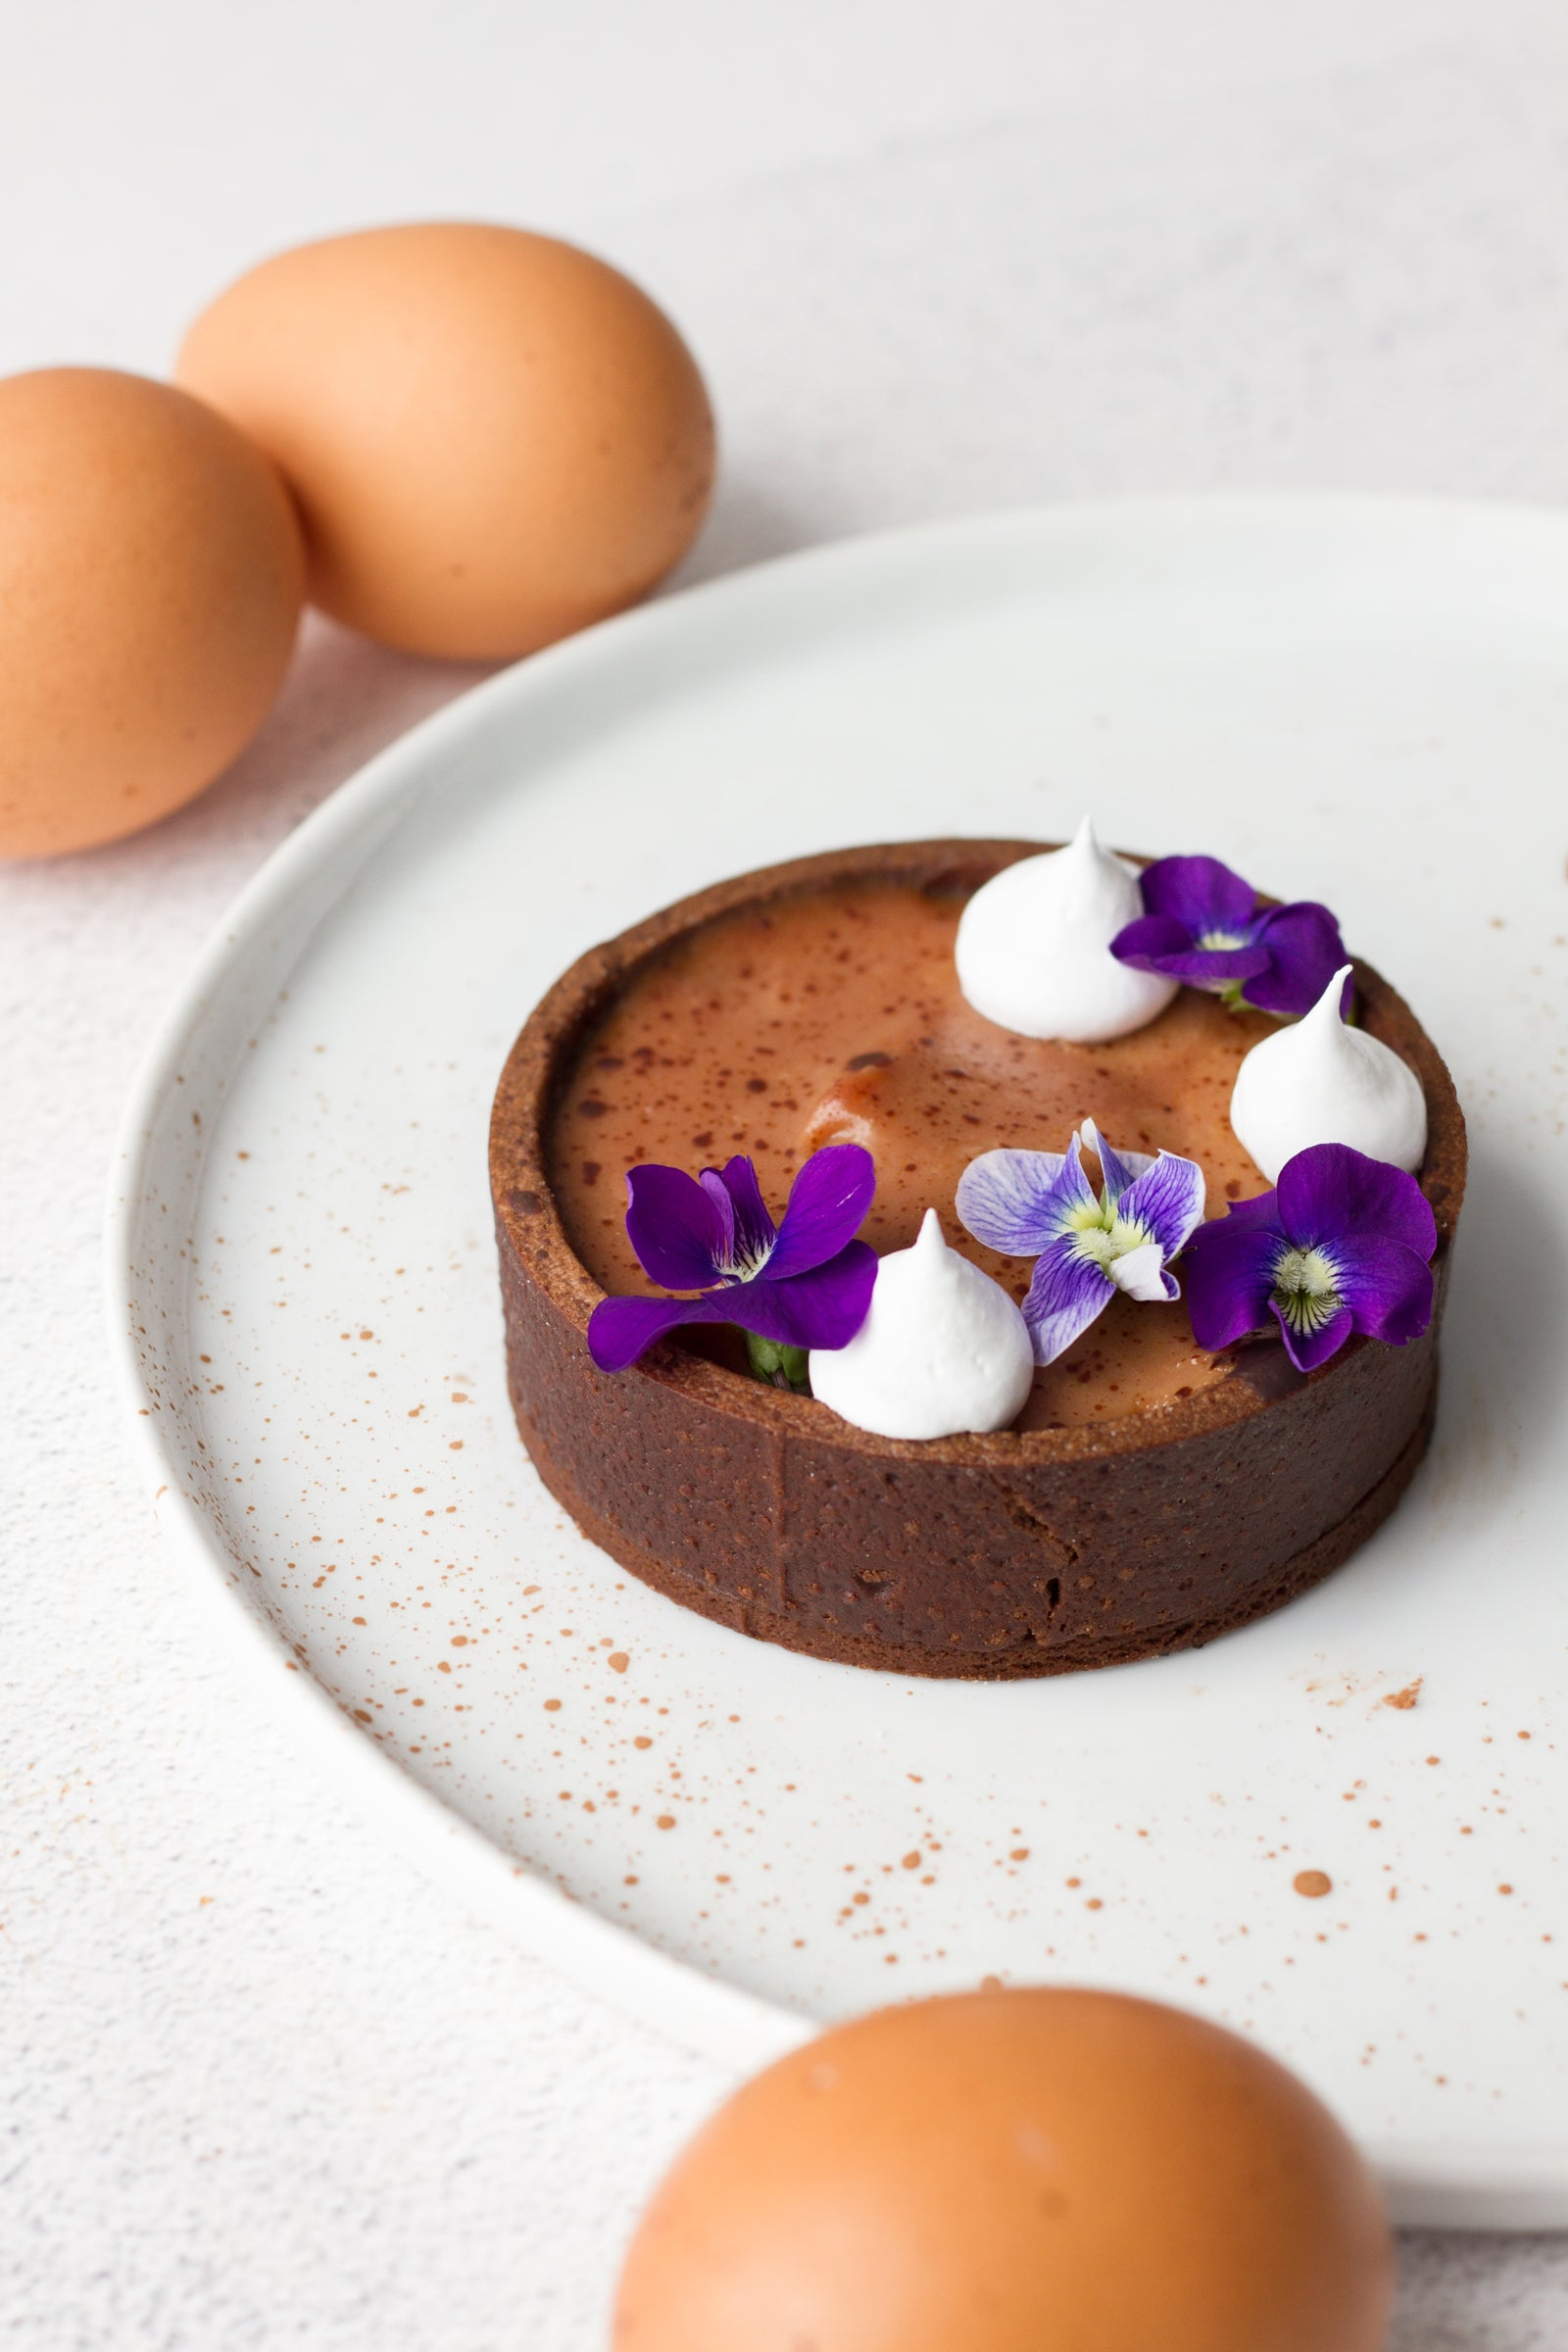 The perfect spring dessert: vanilla cocoa tartlet with edible violets